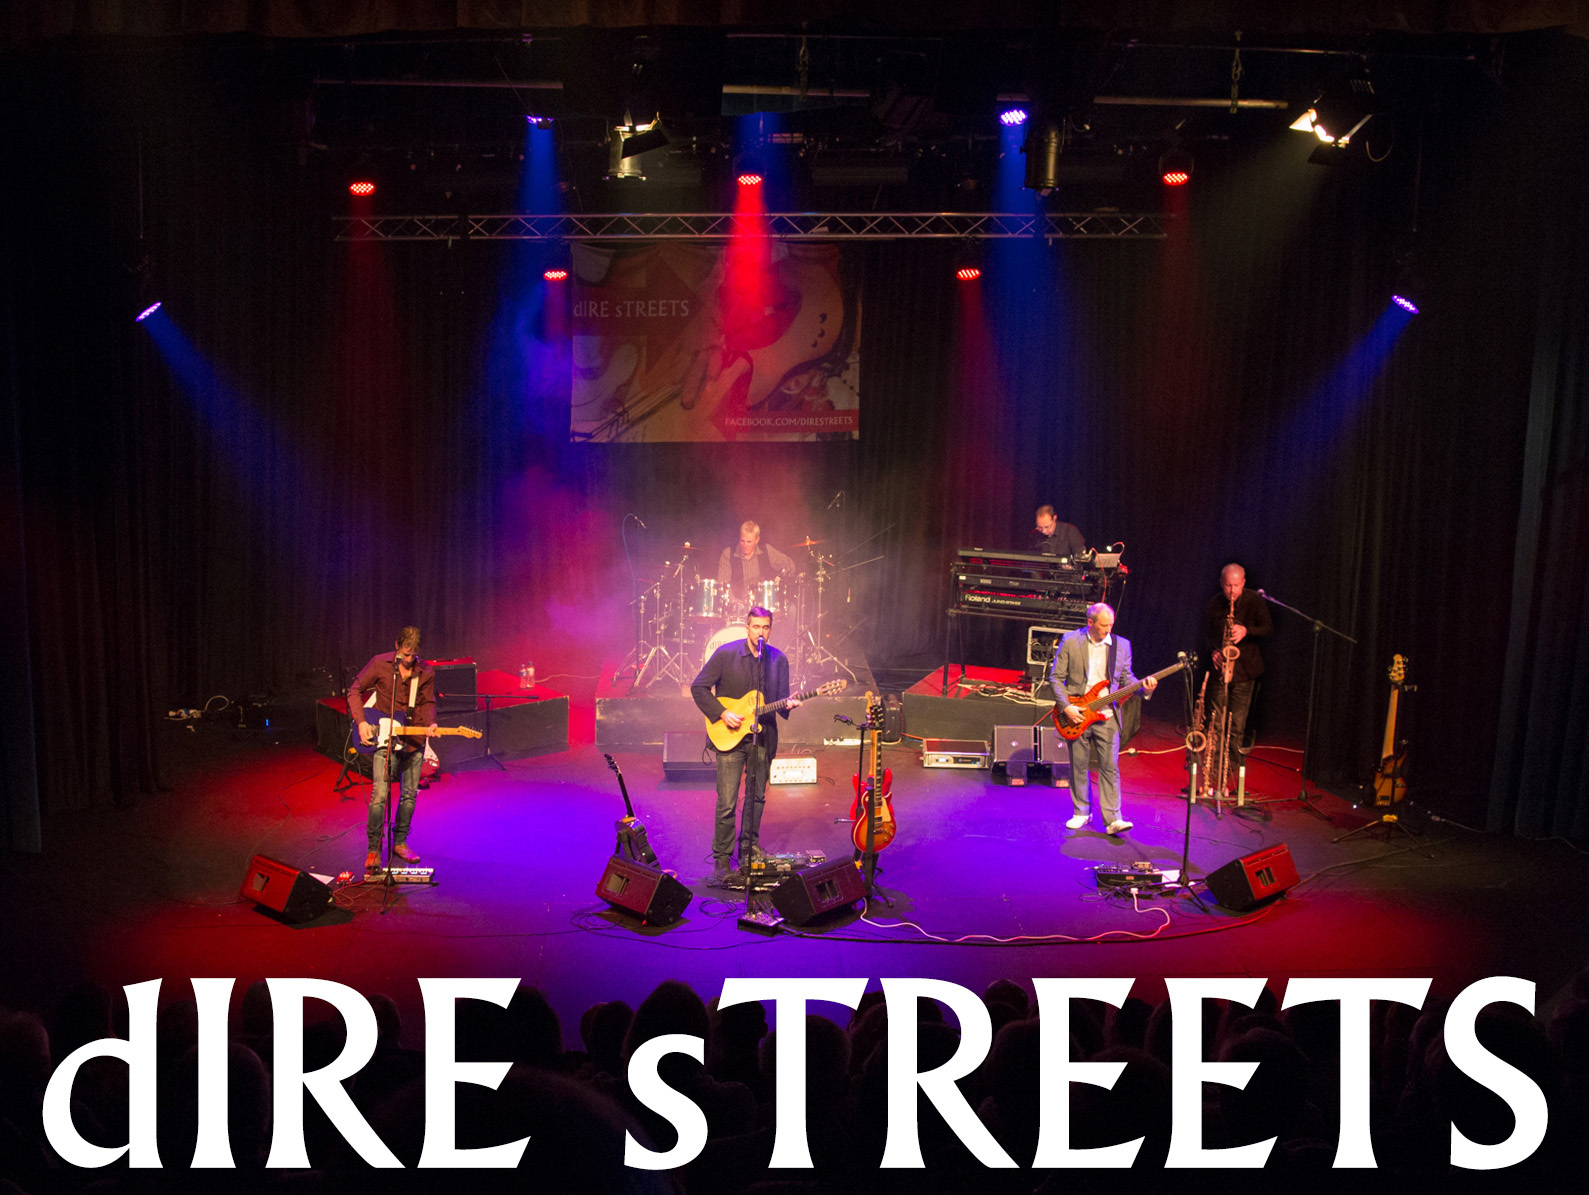 Dire Streets who are performing at Abergavenny's The Borough Theatre on October 20 Picture: Paul Dyer